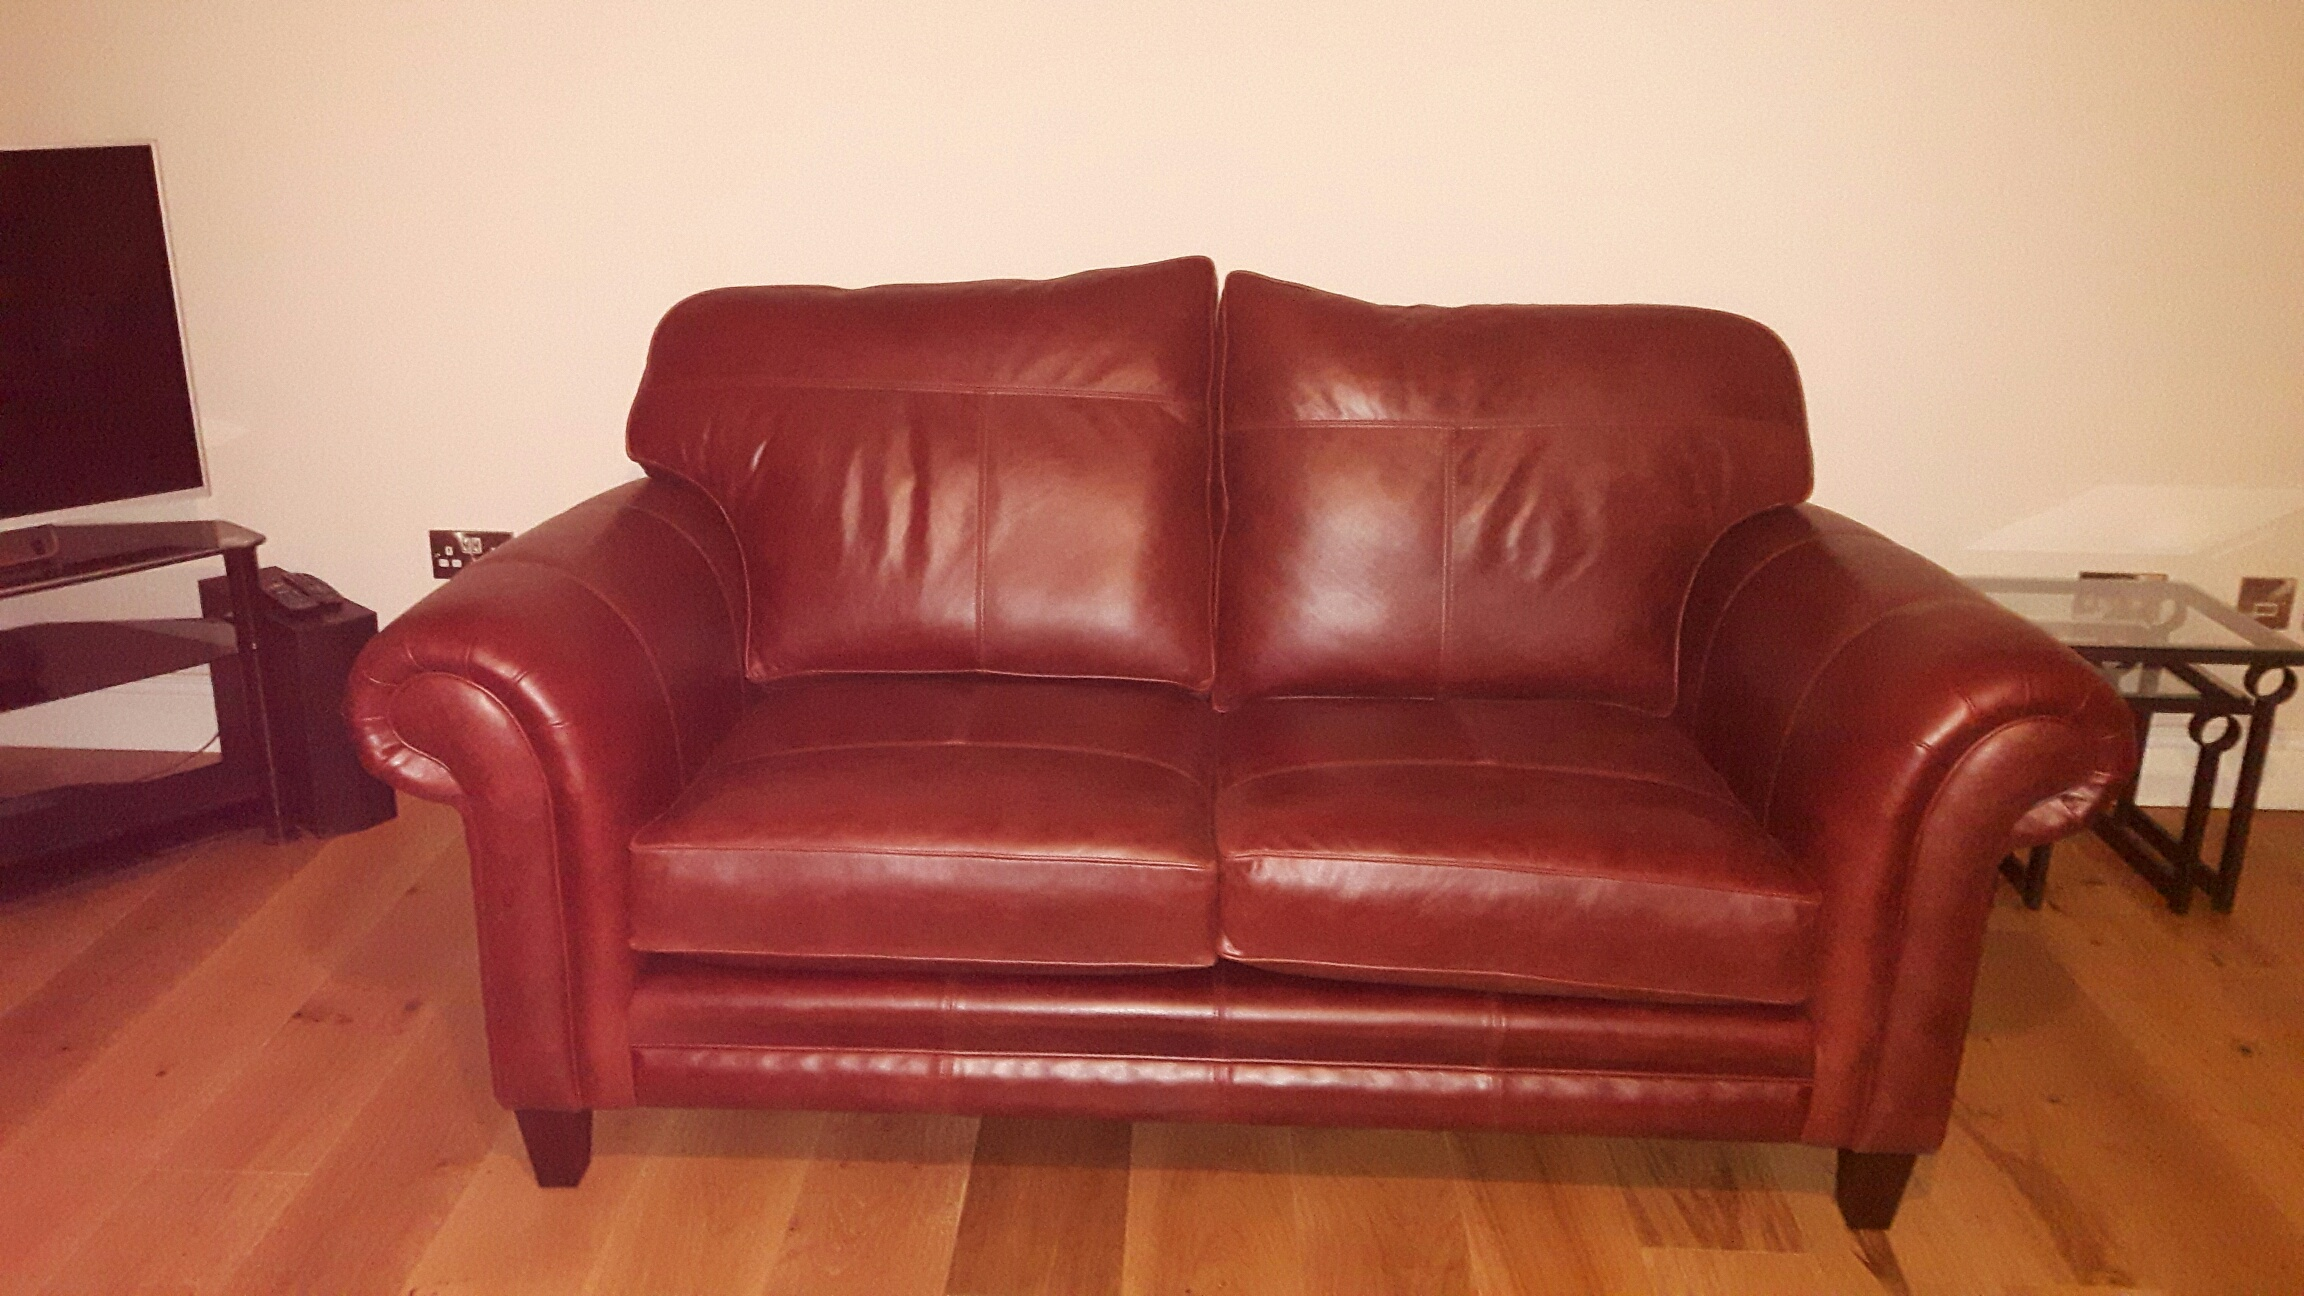 Leather Louis Small Sofa - Mustang Chestnut